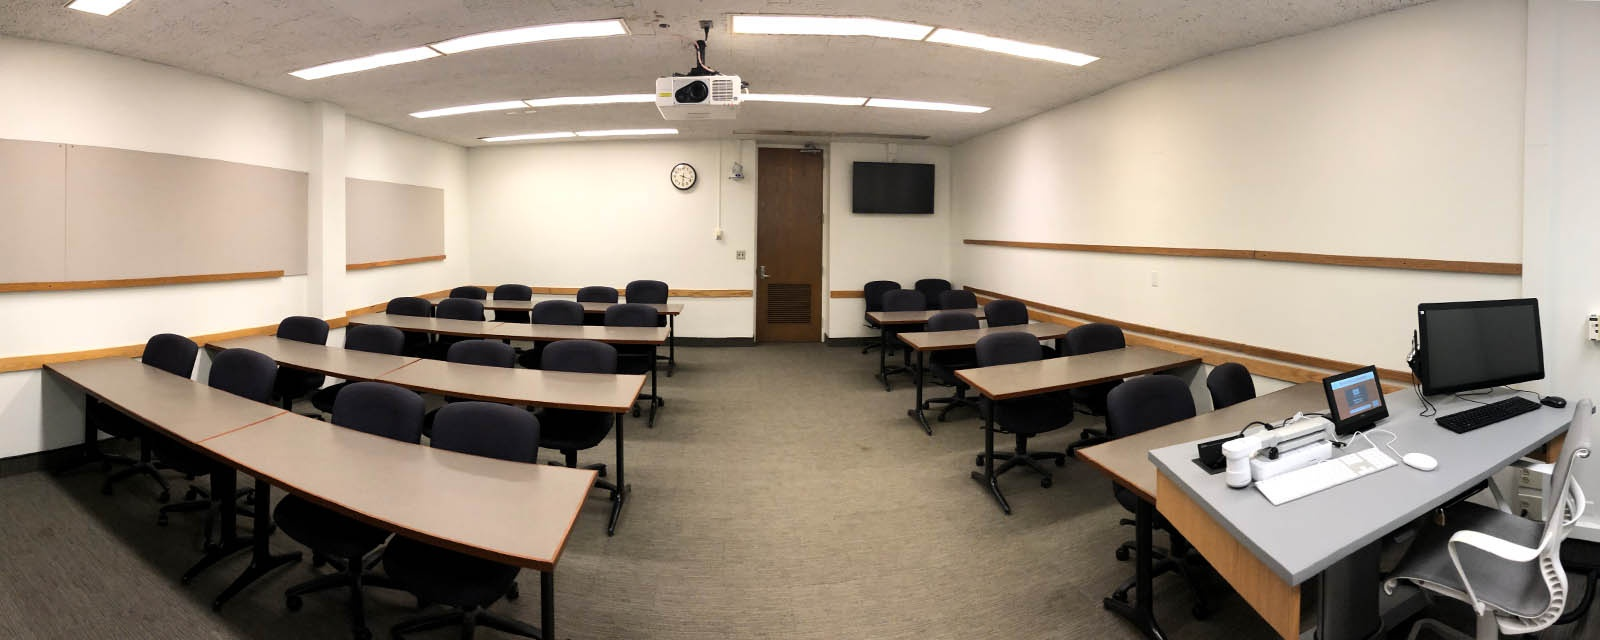 Panorama room 212 teacher view, movable chairs, teaching station front right